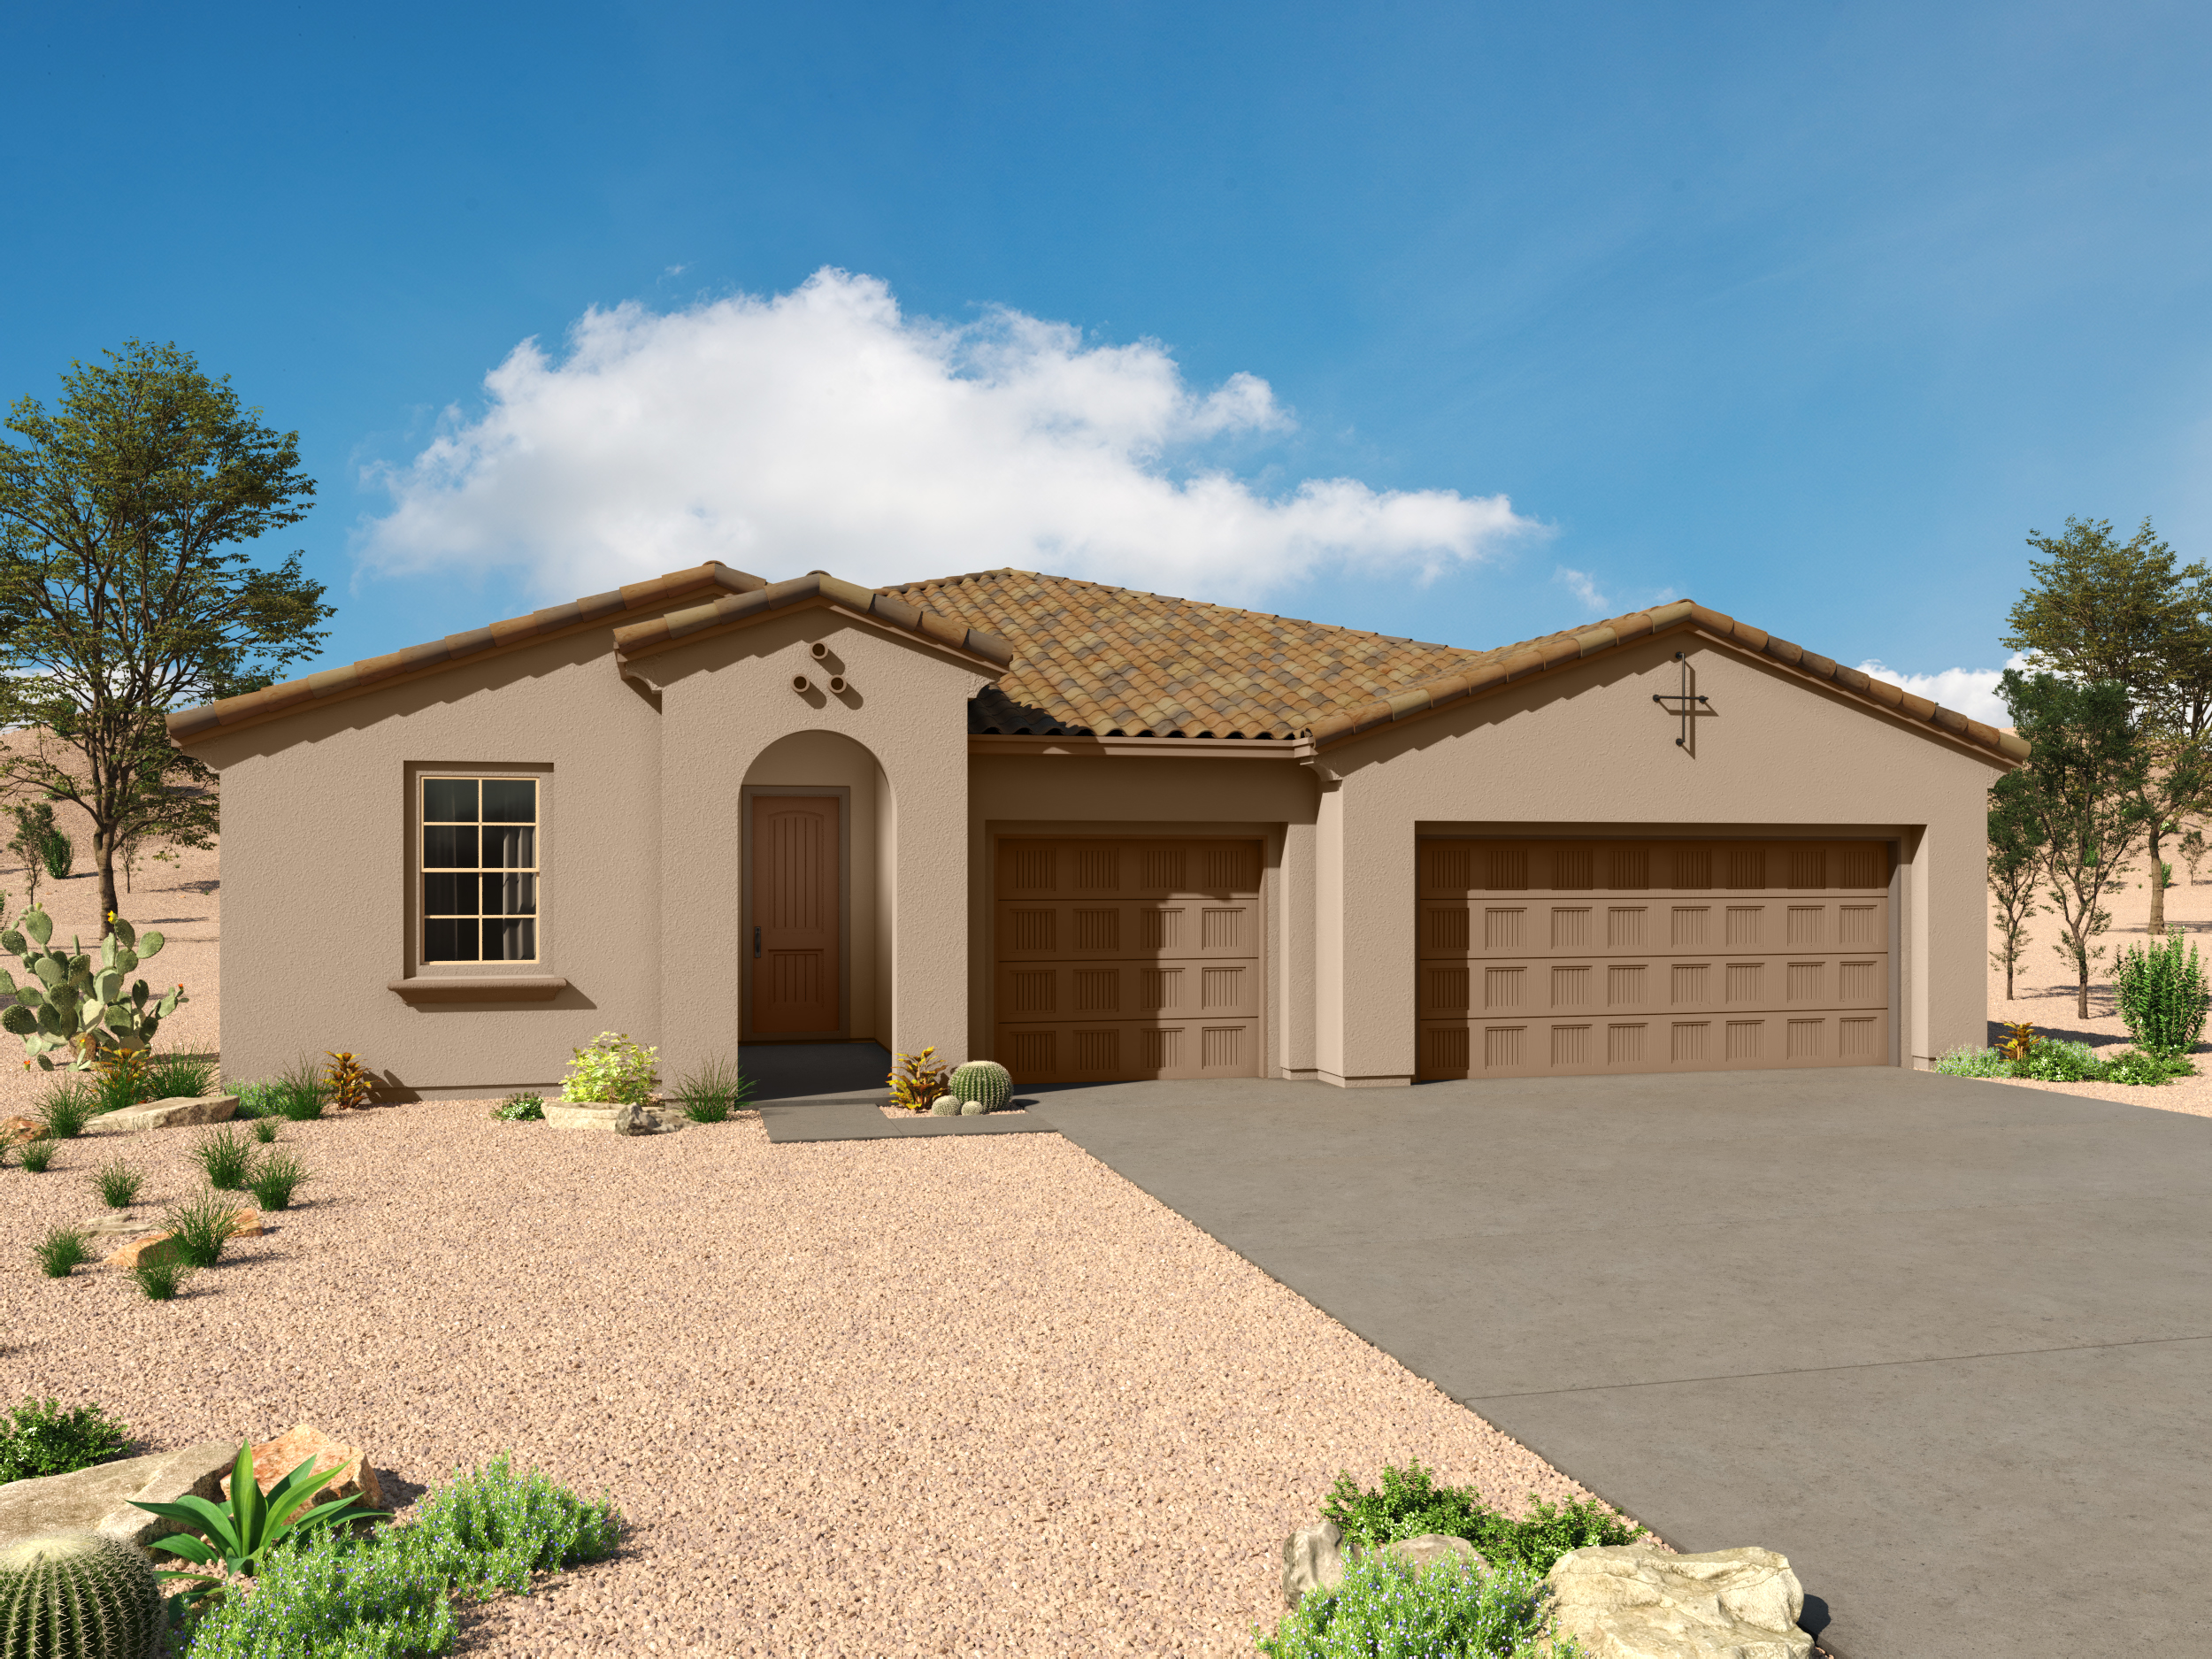 Agave Plan Elevation Front at Desert Oasis at Twin Peaks in Marana Arizona by Mattamy Homes